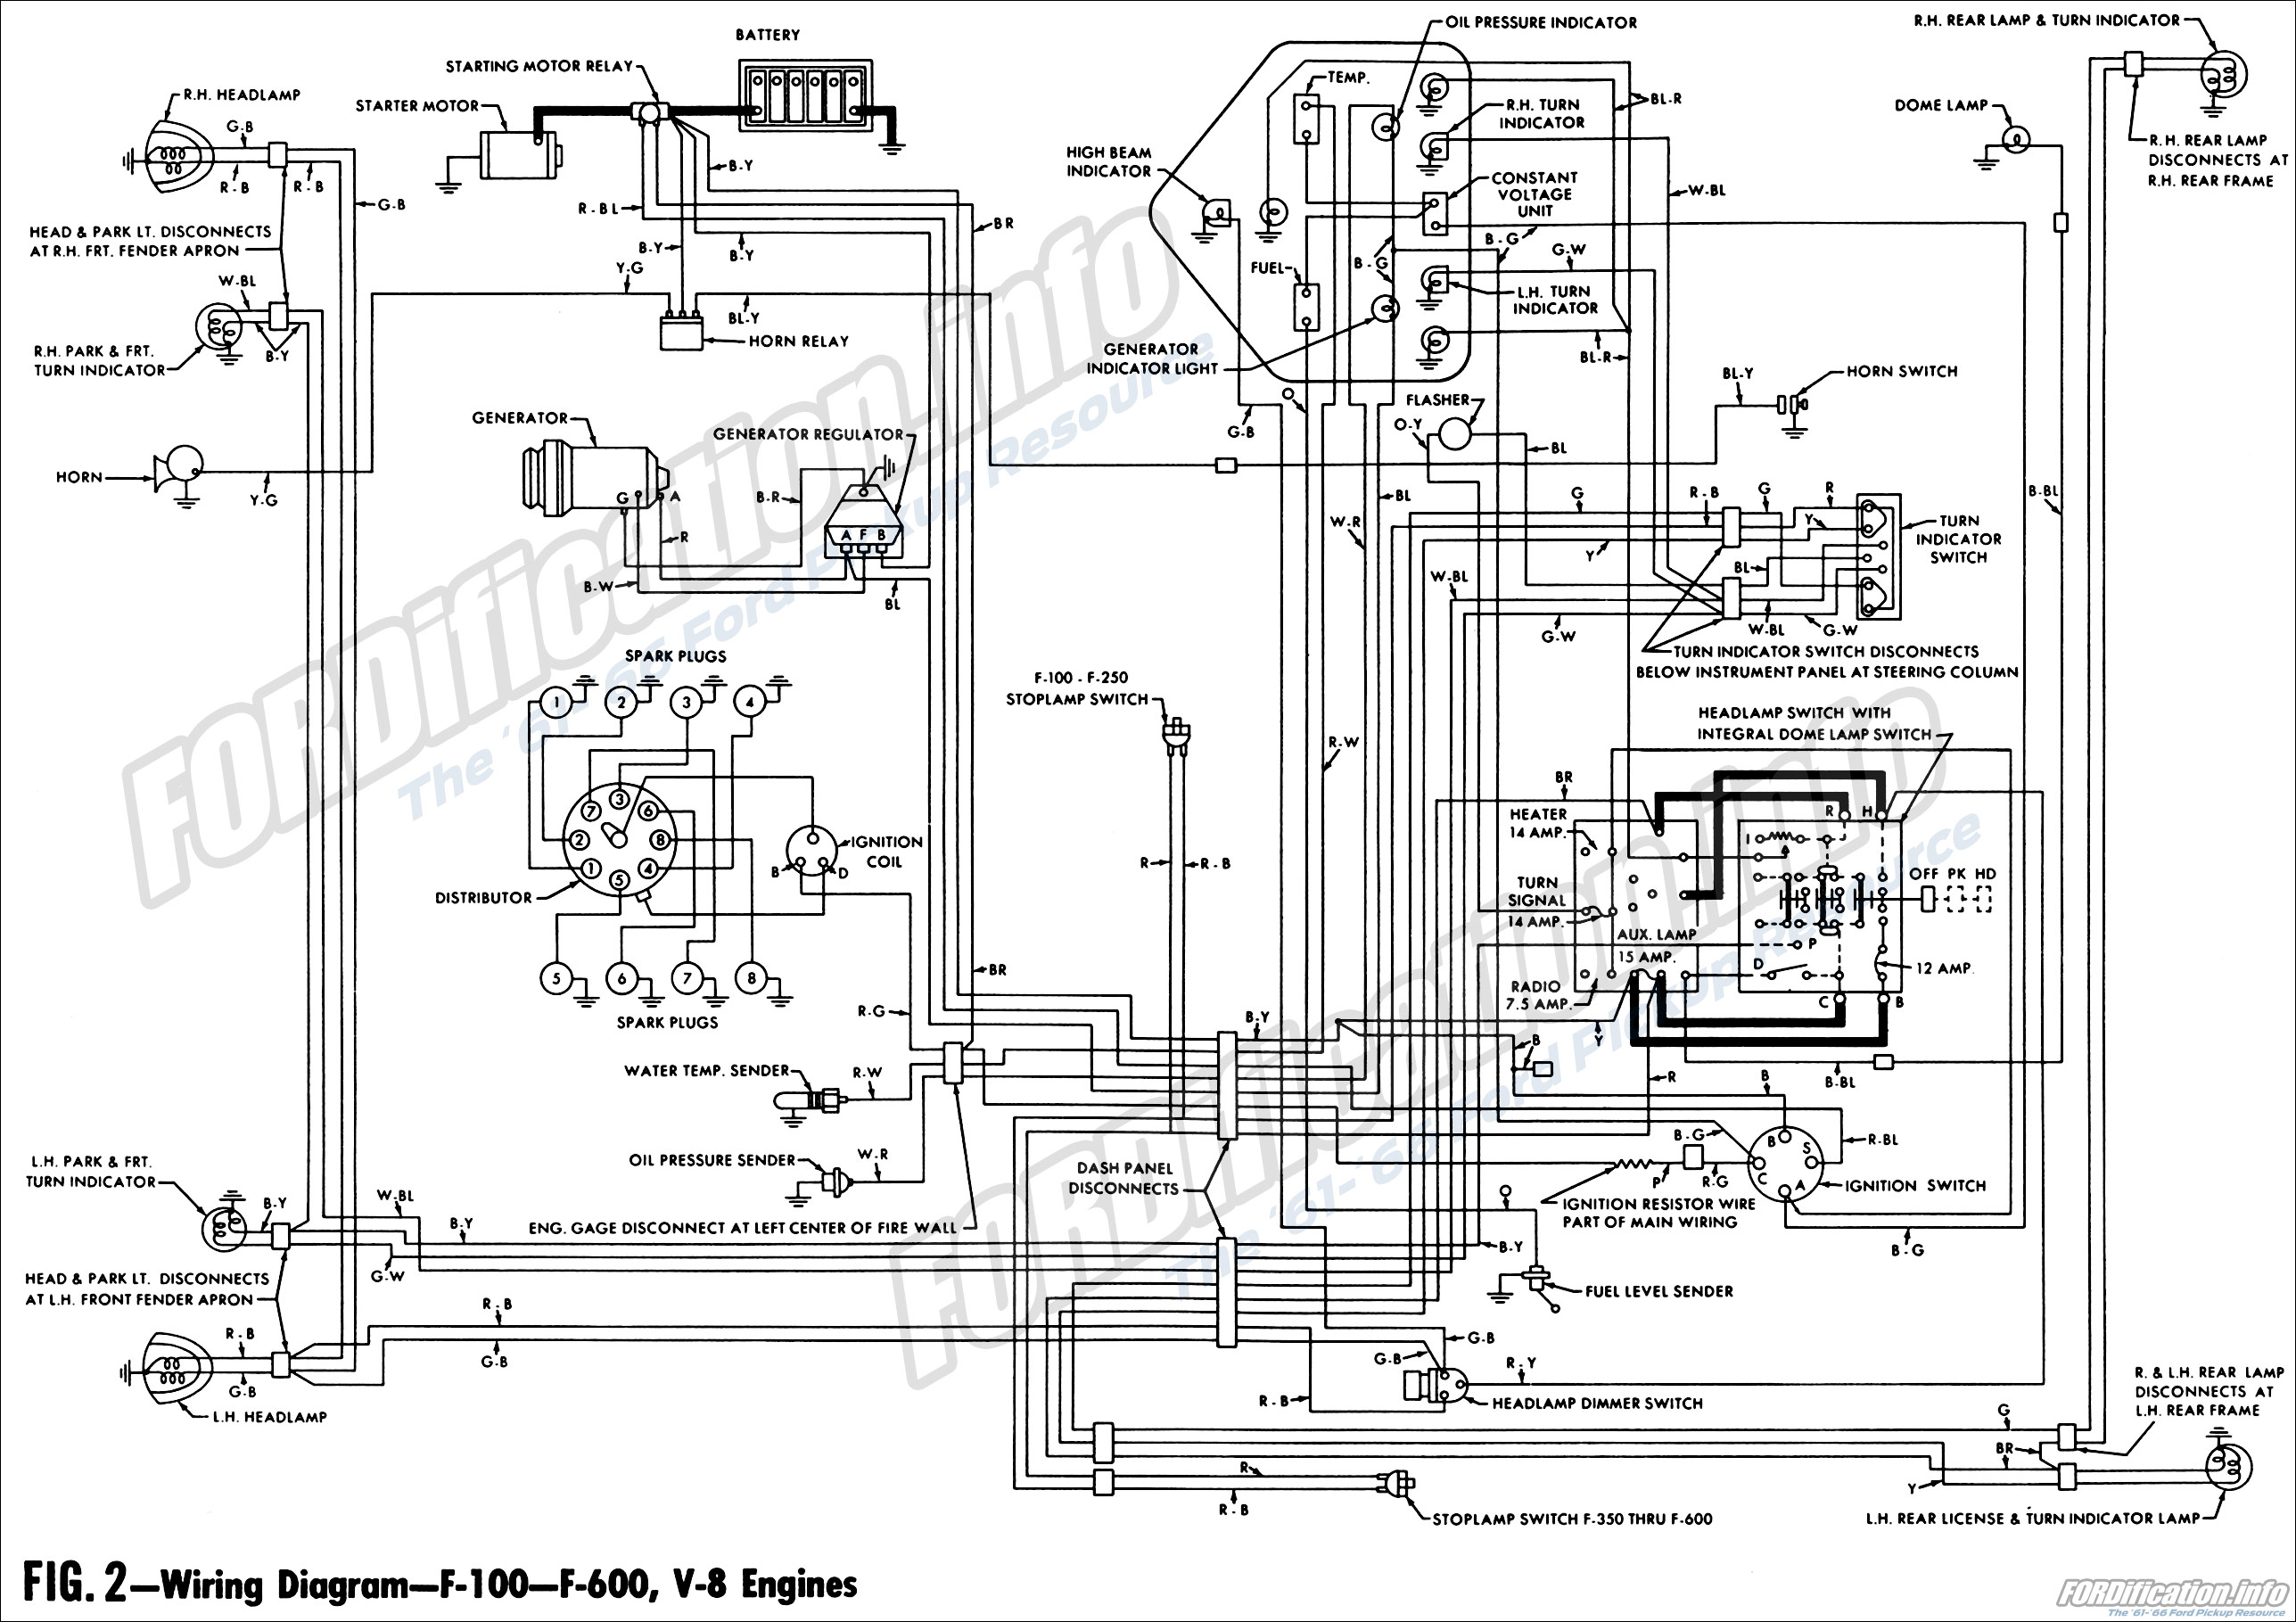 1961 Ford Truck    Wiring       Diagrams     FORDificationinfo  The  61 66 Ford Pickup Resource